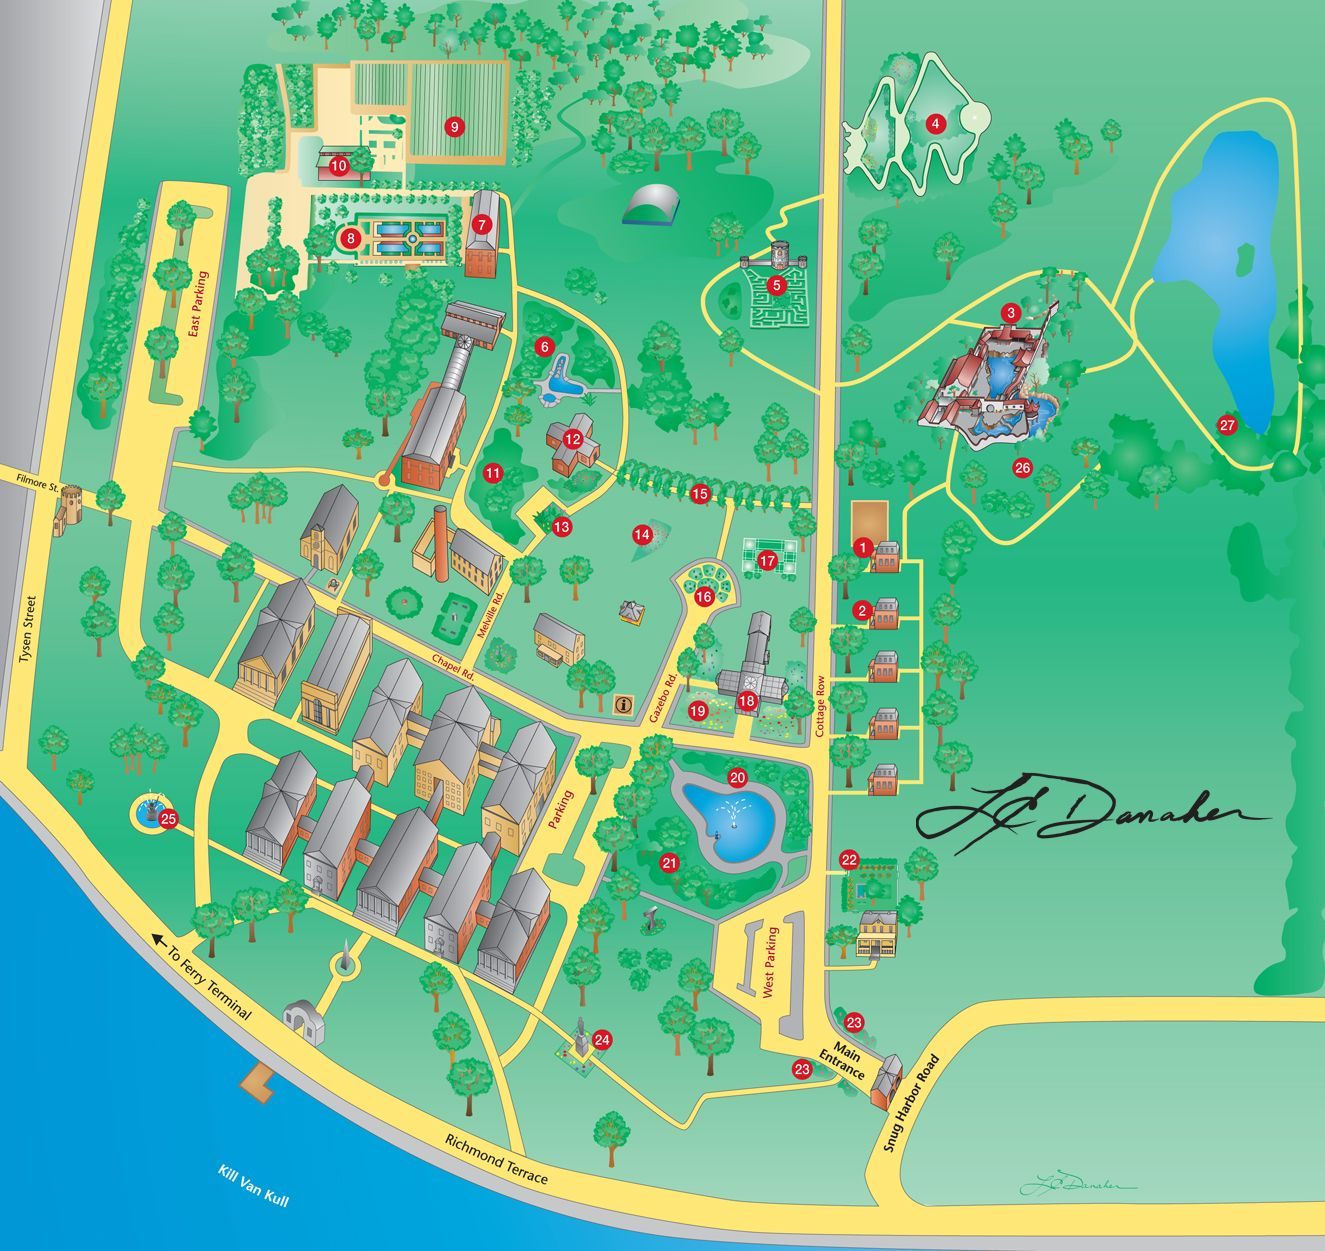 Map Of Snug Harbor Cultural Center, The Staten Island Botanical Garden And  The New York